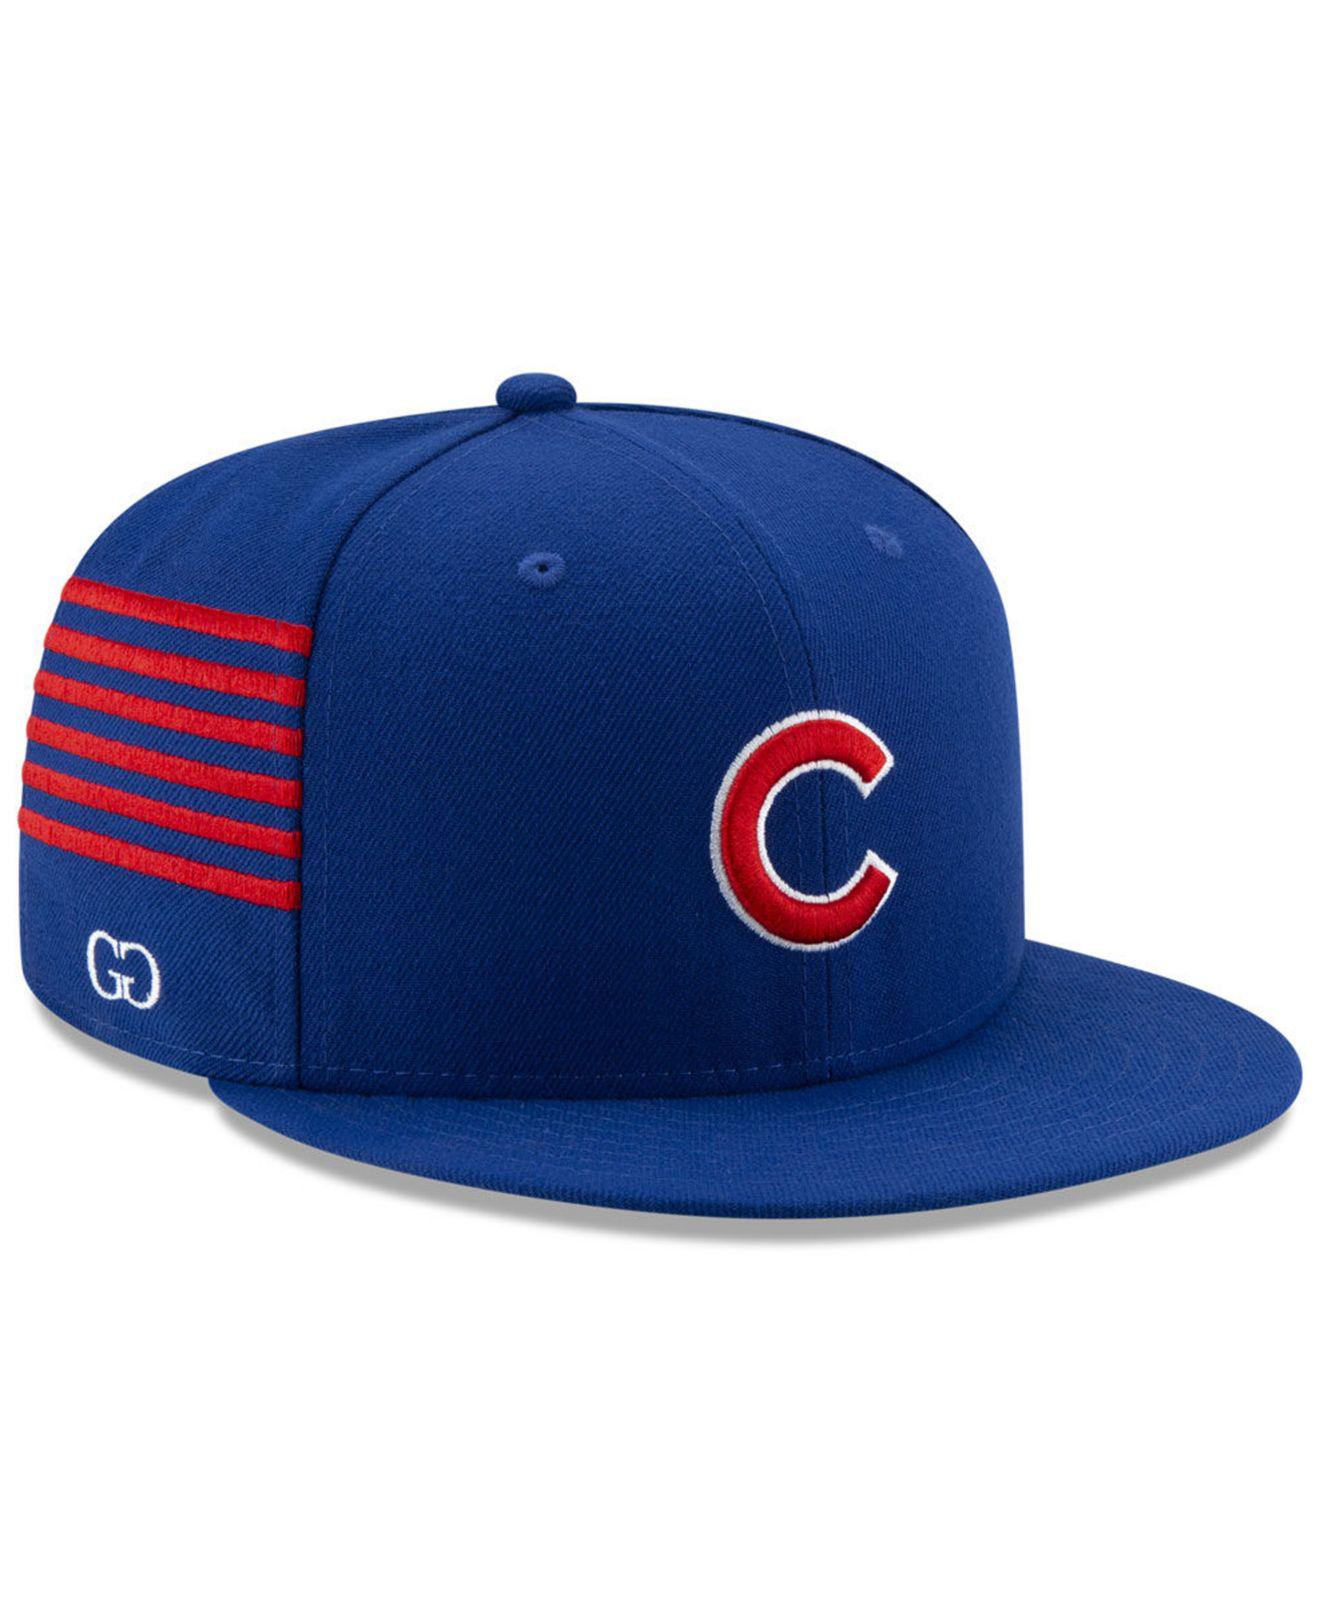 big sale 6c3b5 80d13 KTZ. Men s Blue Chicago Cubs Grungy Gentleman 59fifty Fitted Cap